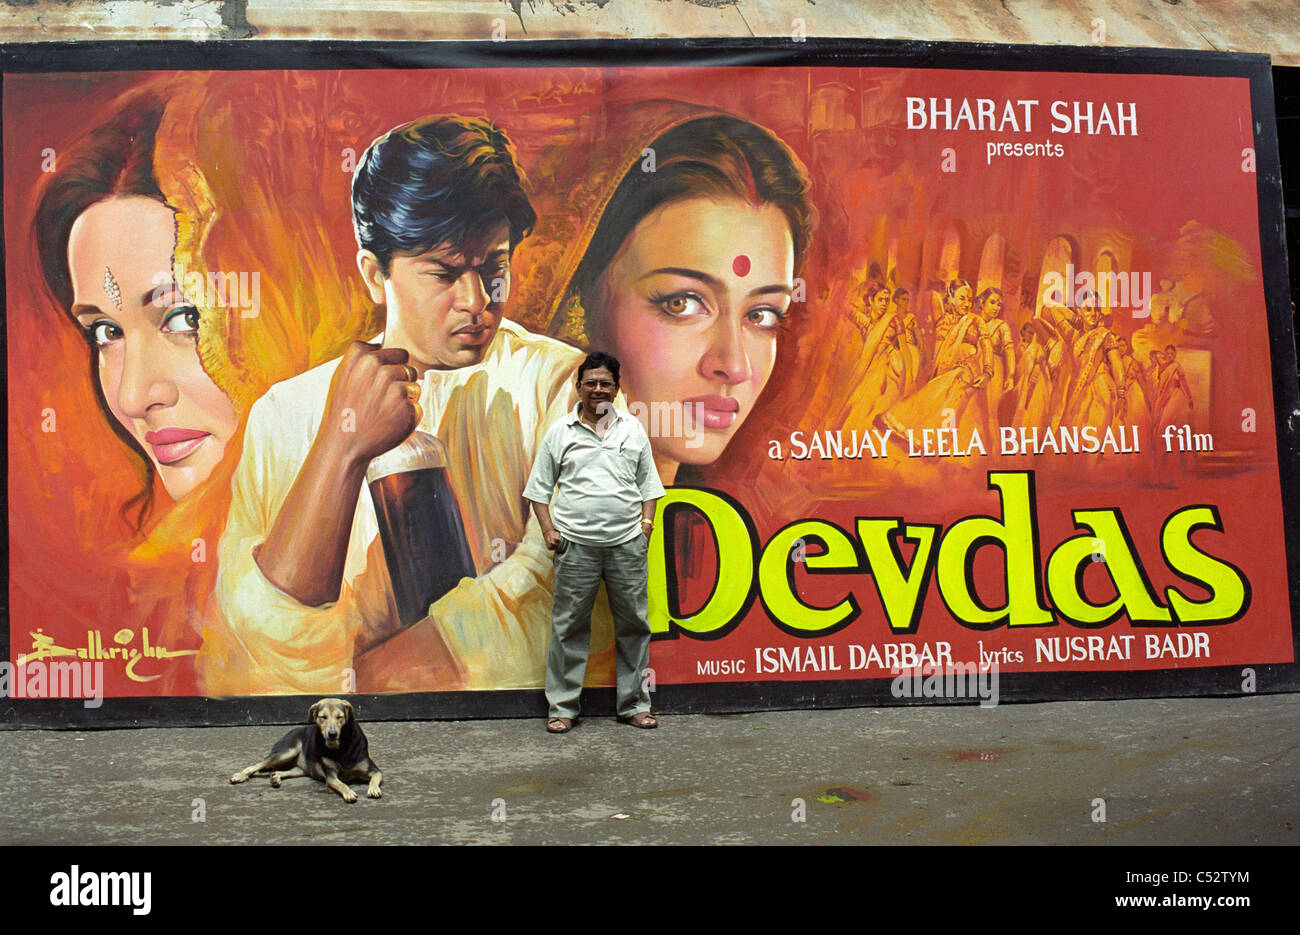 Bollywood Movie Poster Stock Photos Bollywood Movie Poster Stock